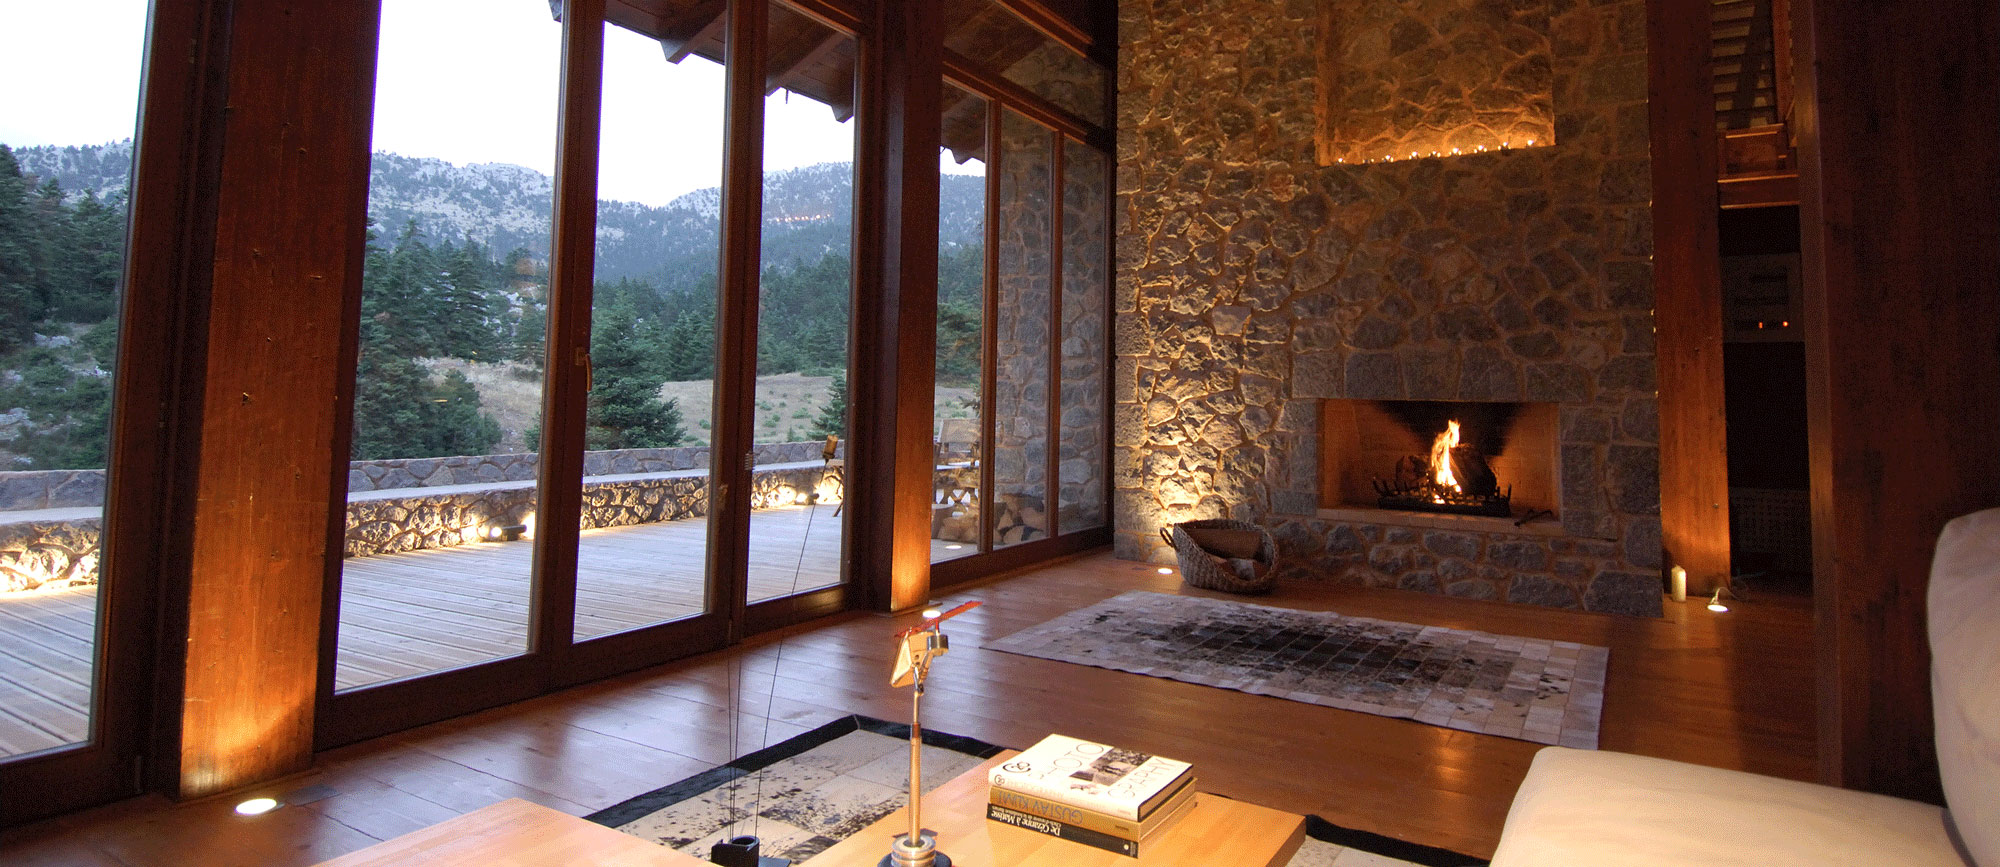 Stone built home with fireplace